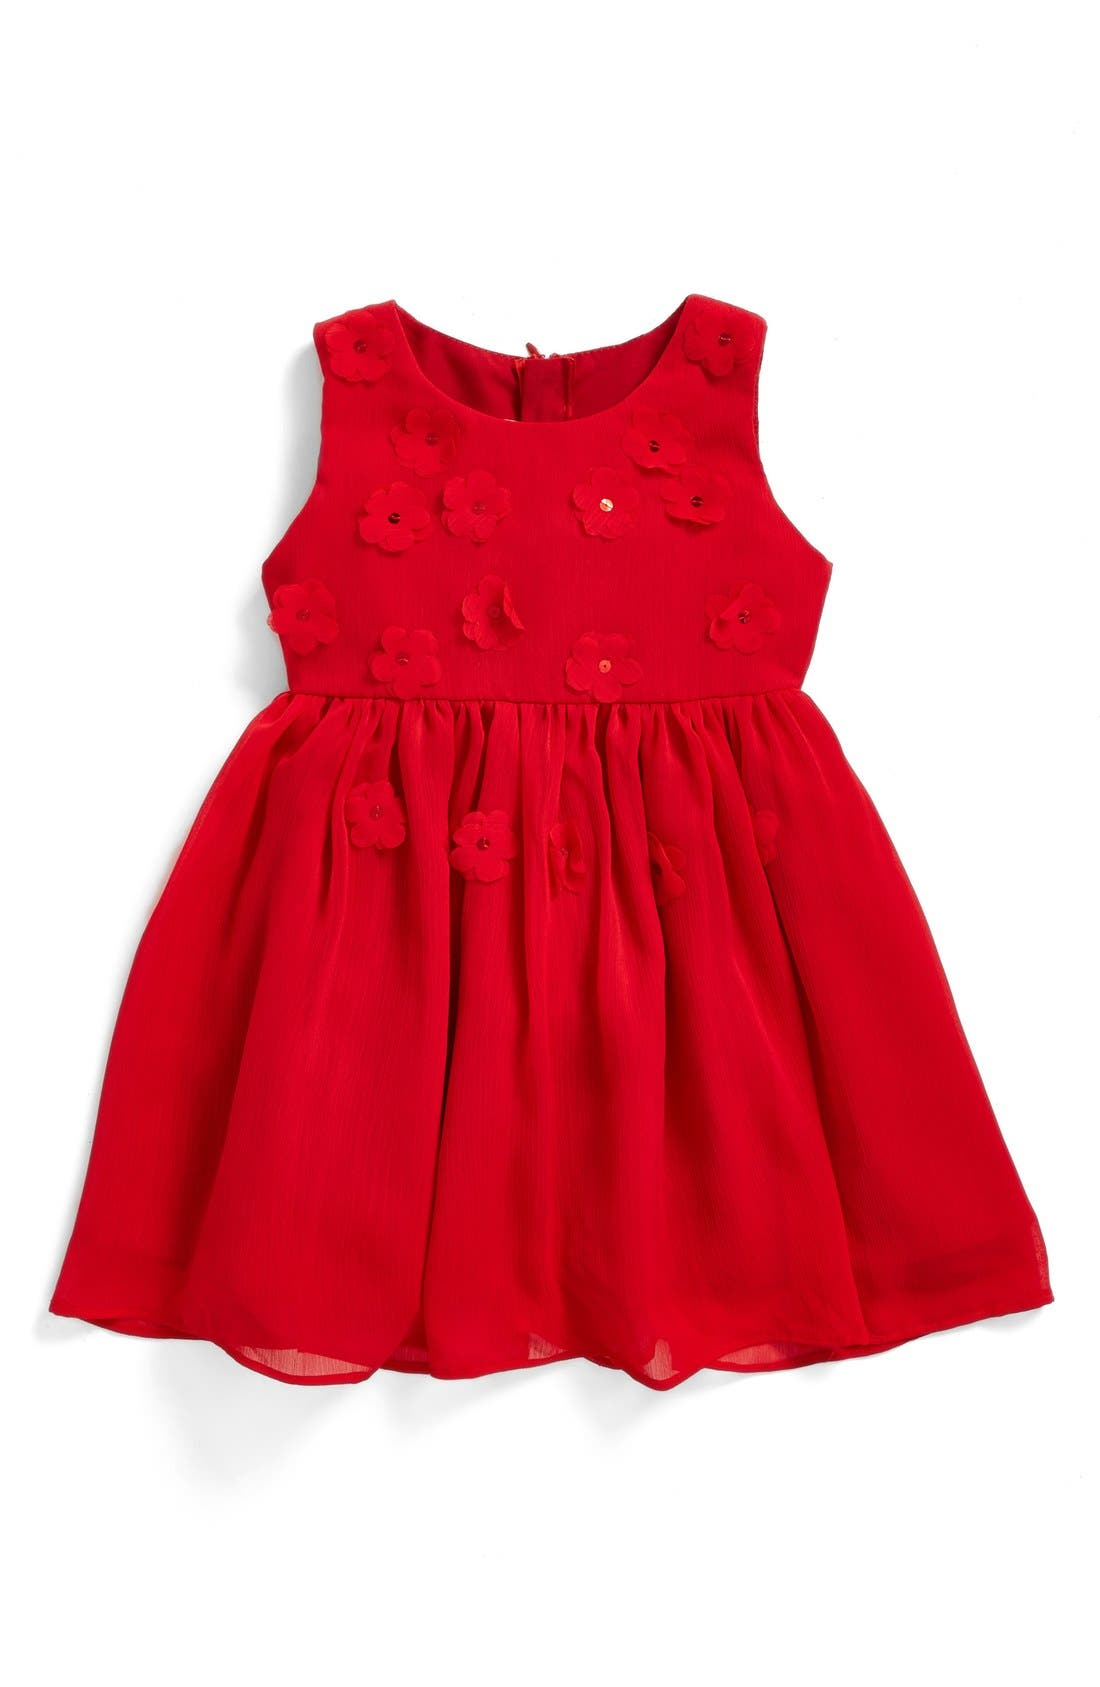 Main Image - Popatu Floral Fit & Flare Dress (Baby Girls)